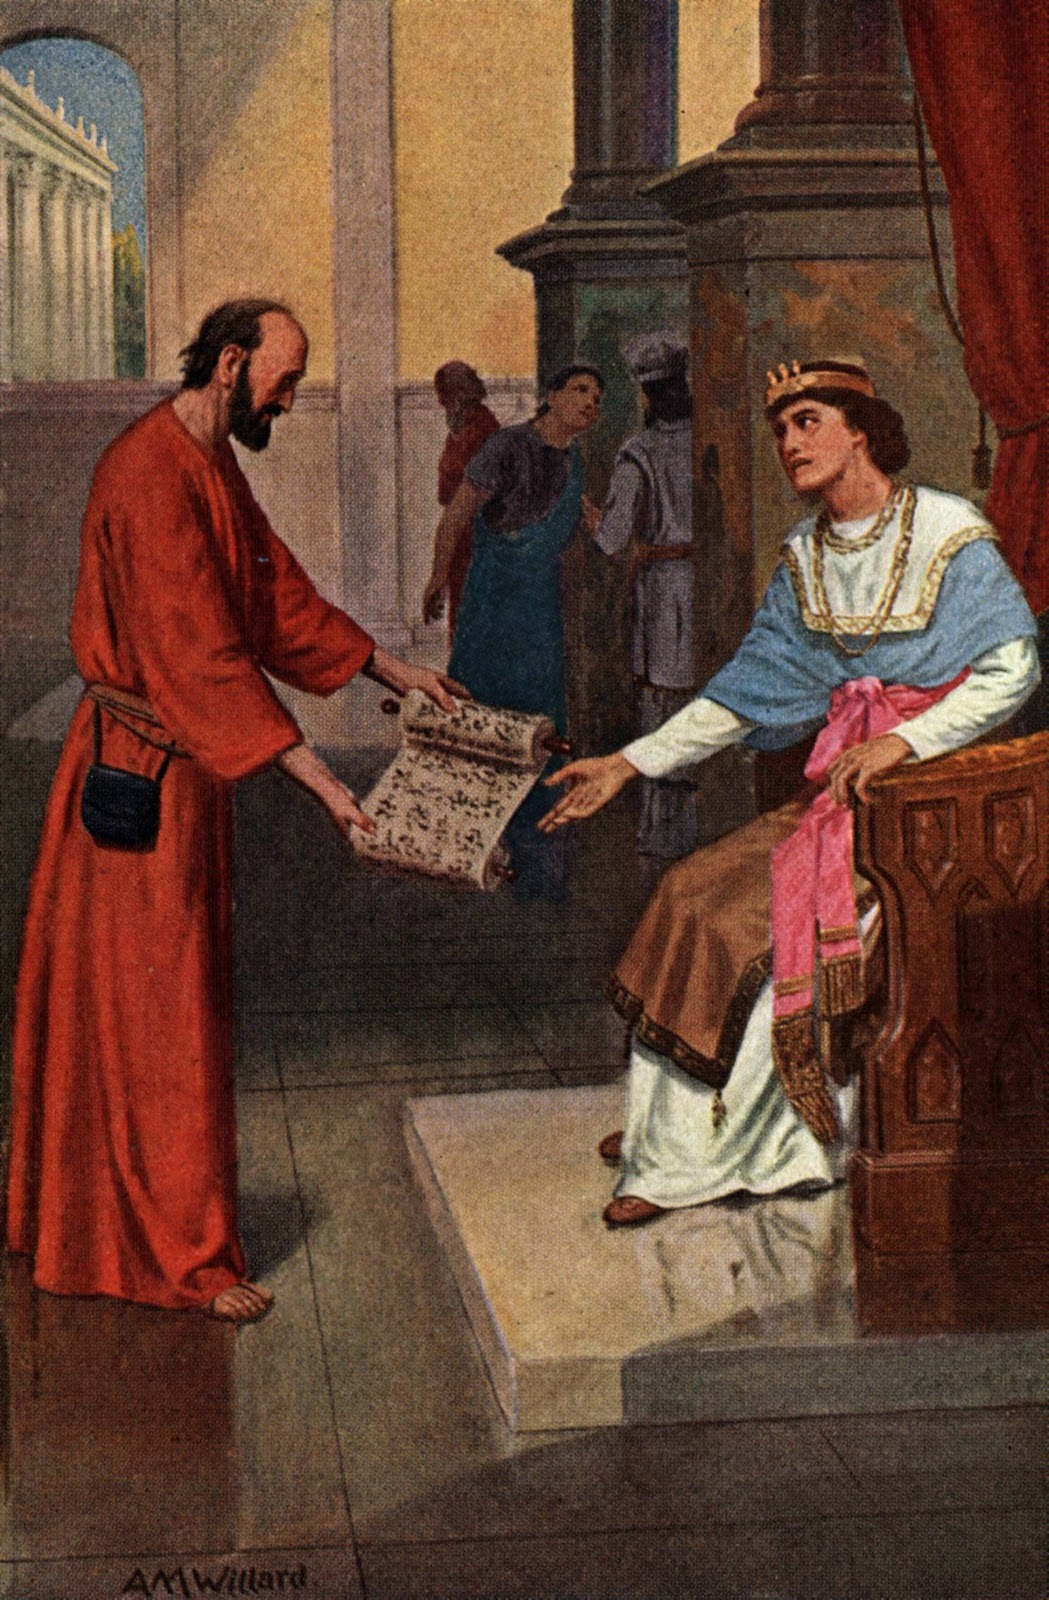 Bible lesson josiah finds the law of the lord - Bible Stories King Josiah